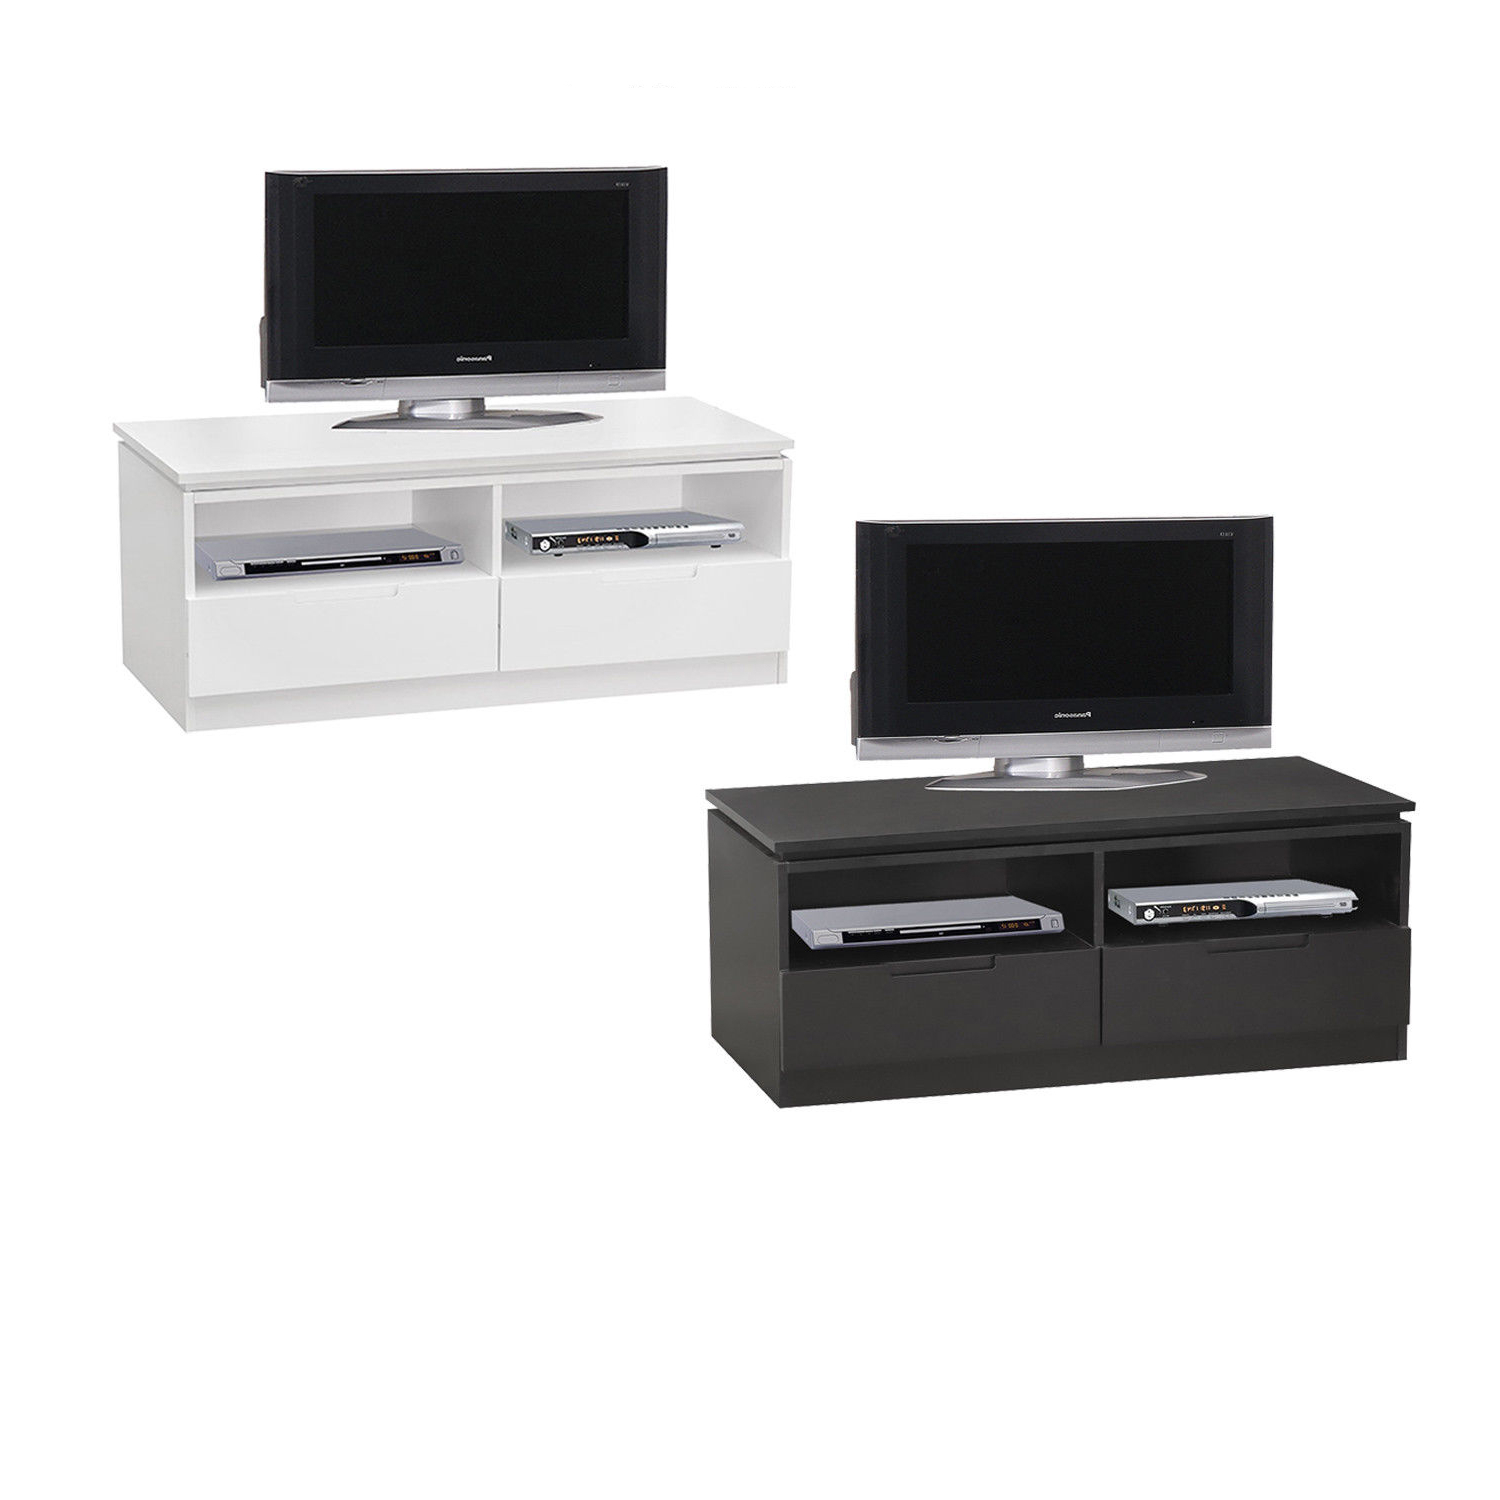 Famous Tv Unit 100cm Regarding Orb Tv Cabinet With 2 Drawers And Shelves – 100cm Wide – Black Or (View 12 of 20)